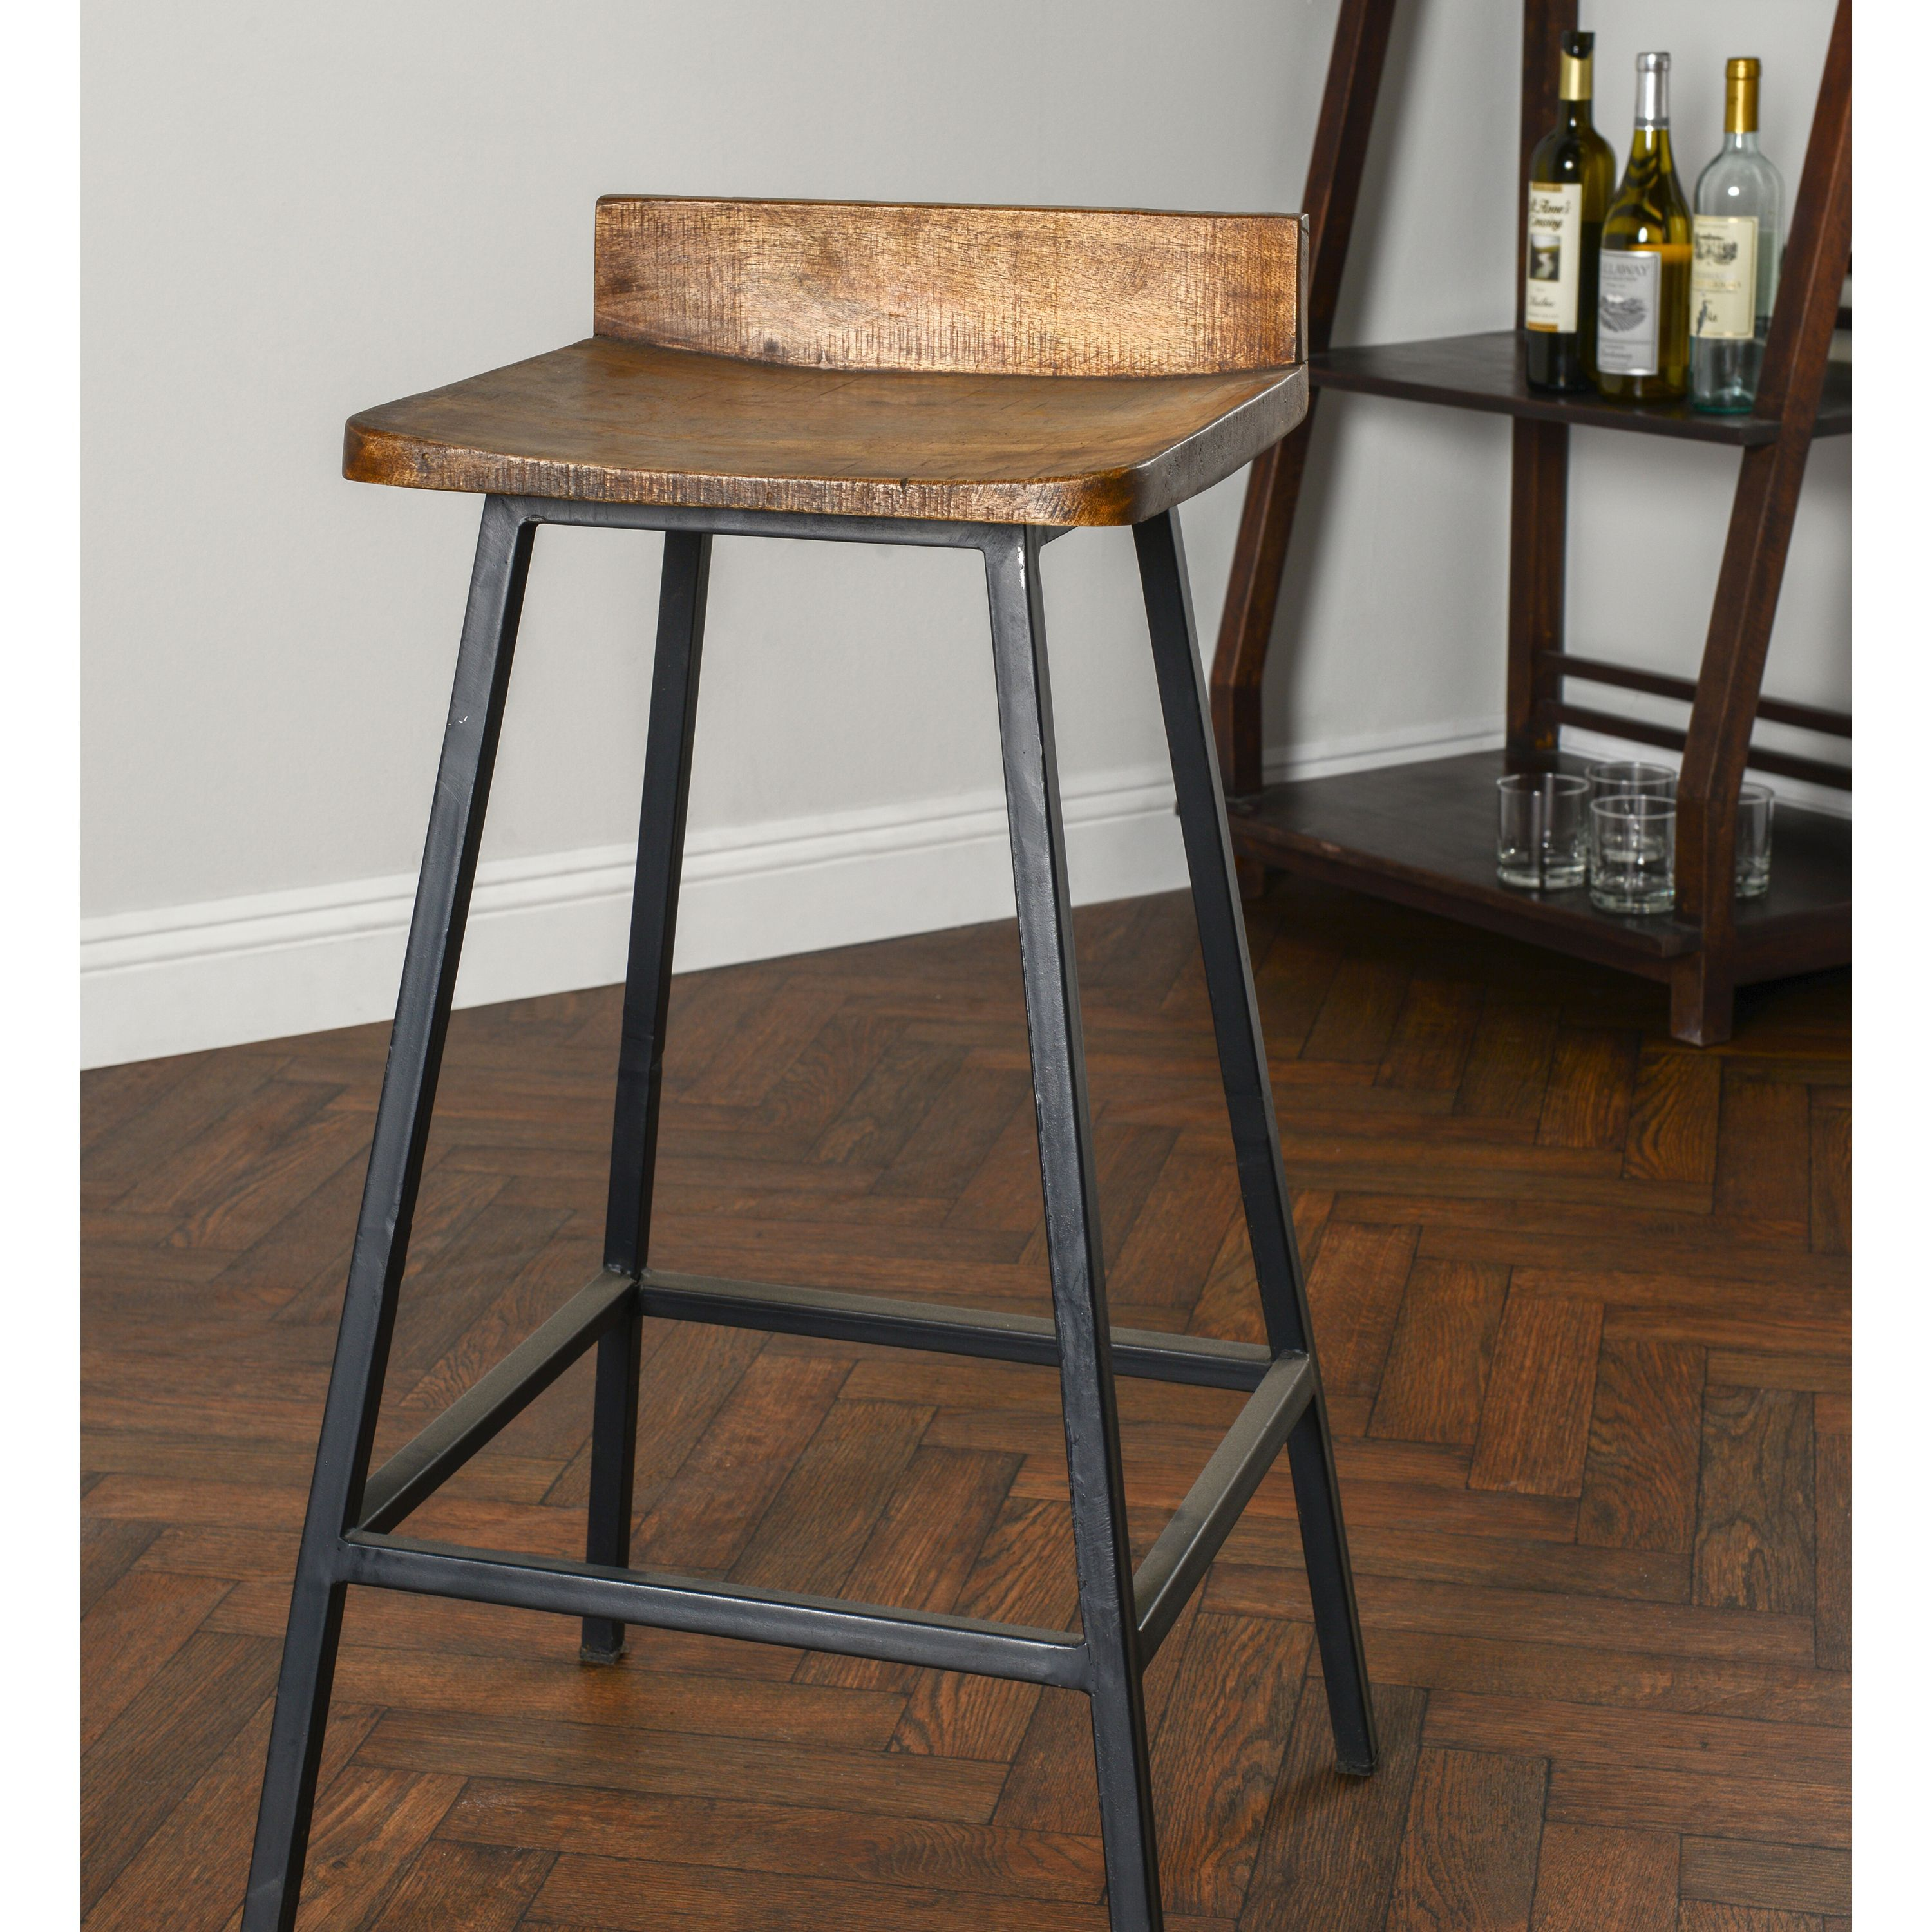 Wood Kitchen Counter Stools The Modern Barstool Is Versatile And Sturdy Making It A